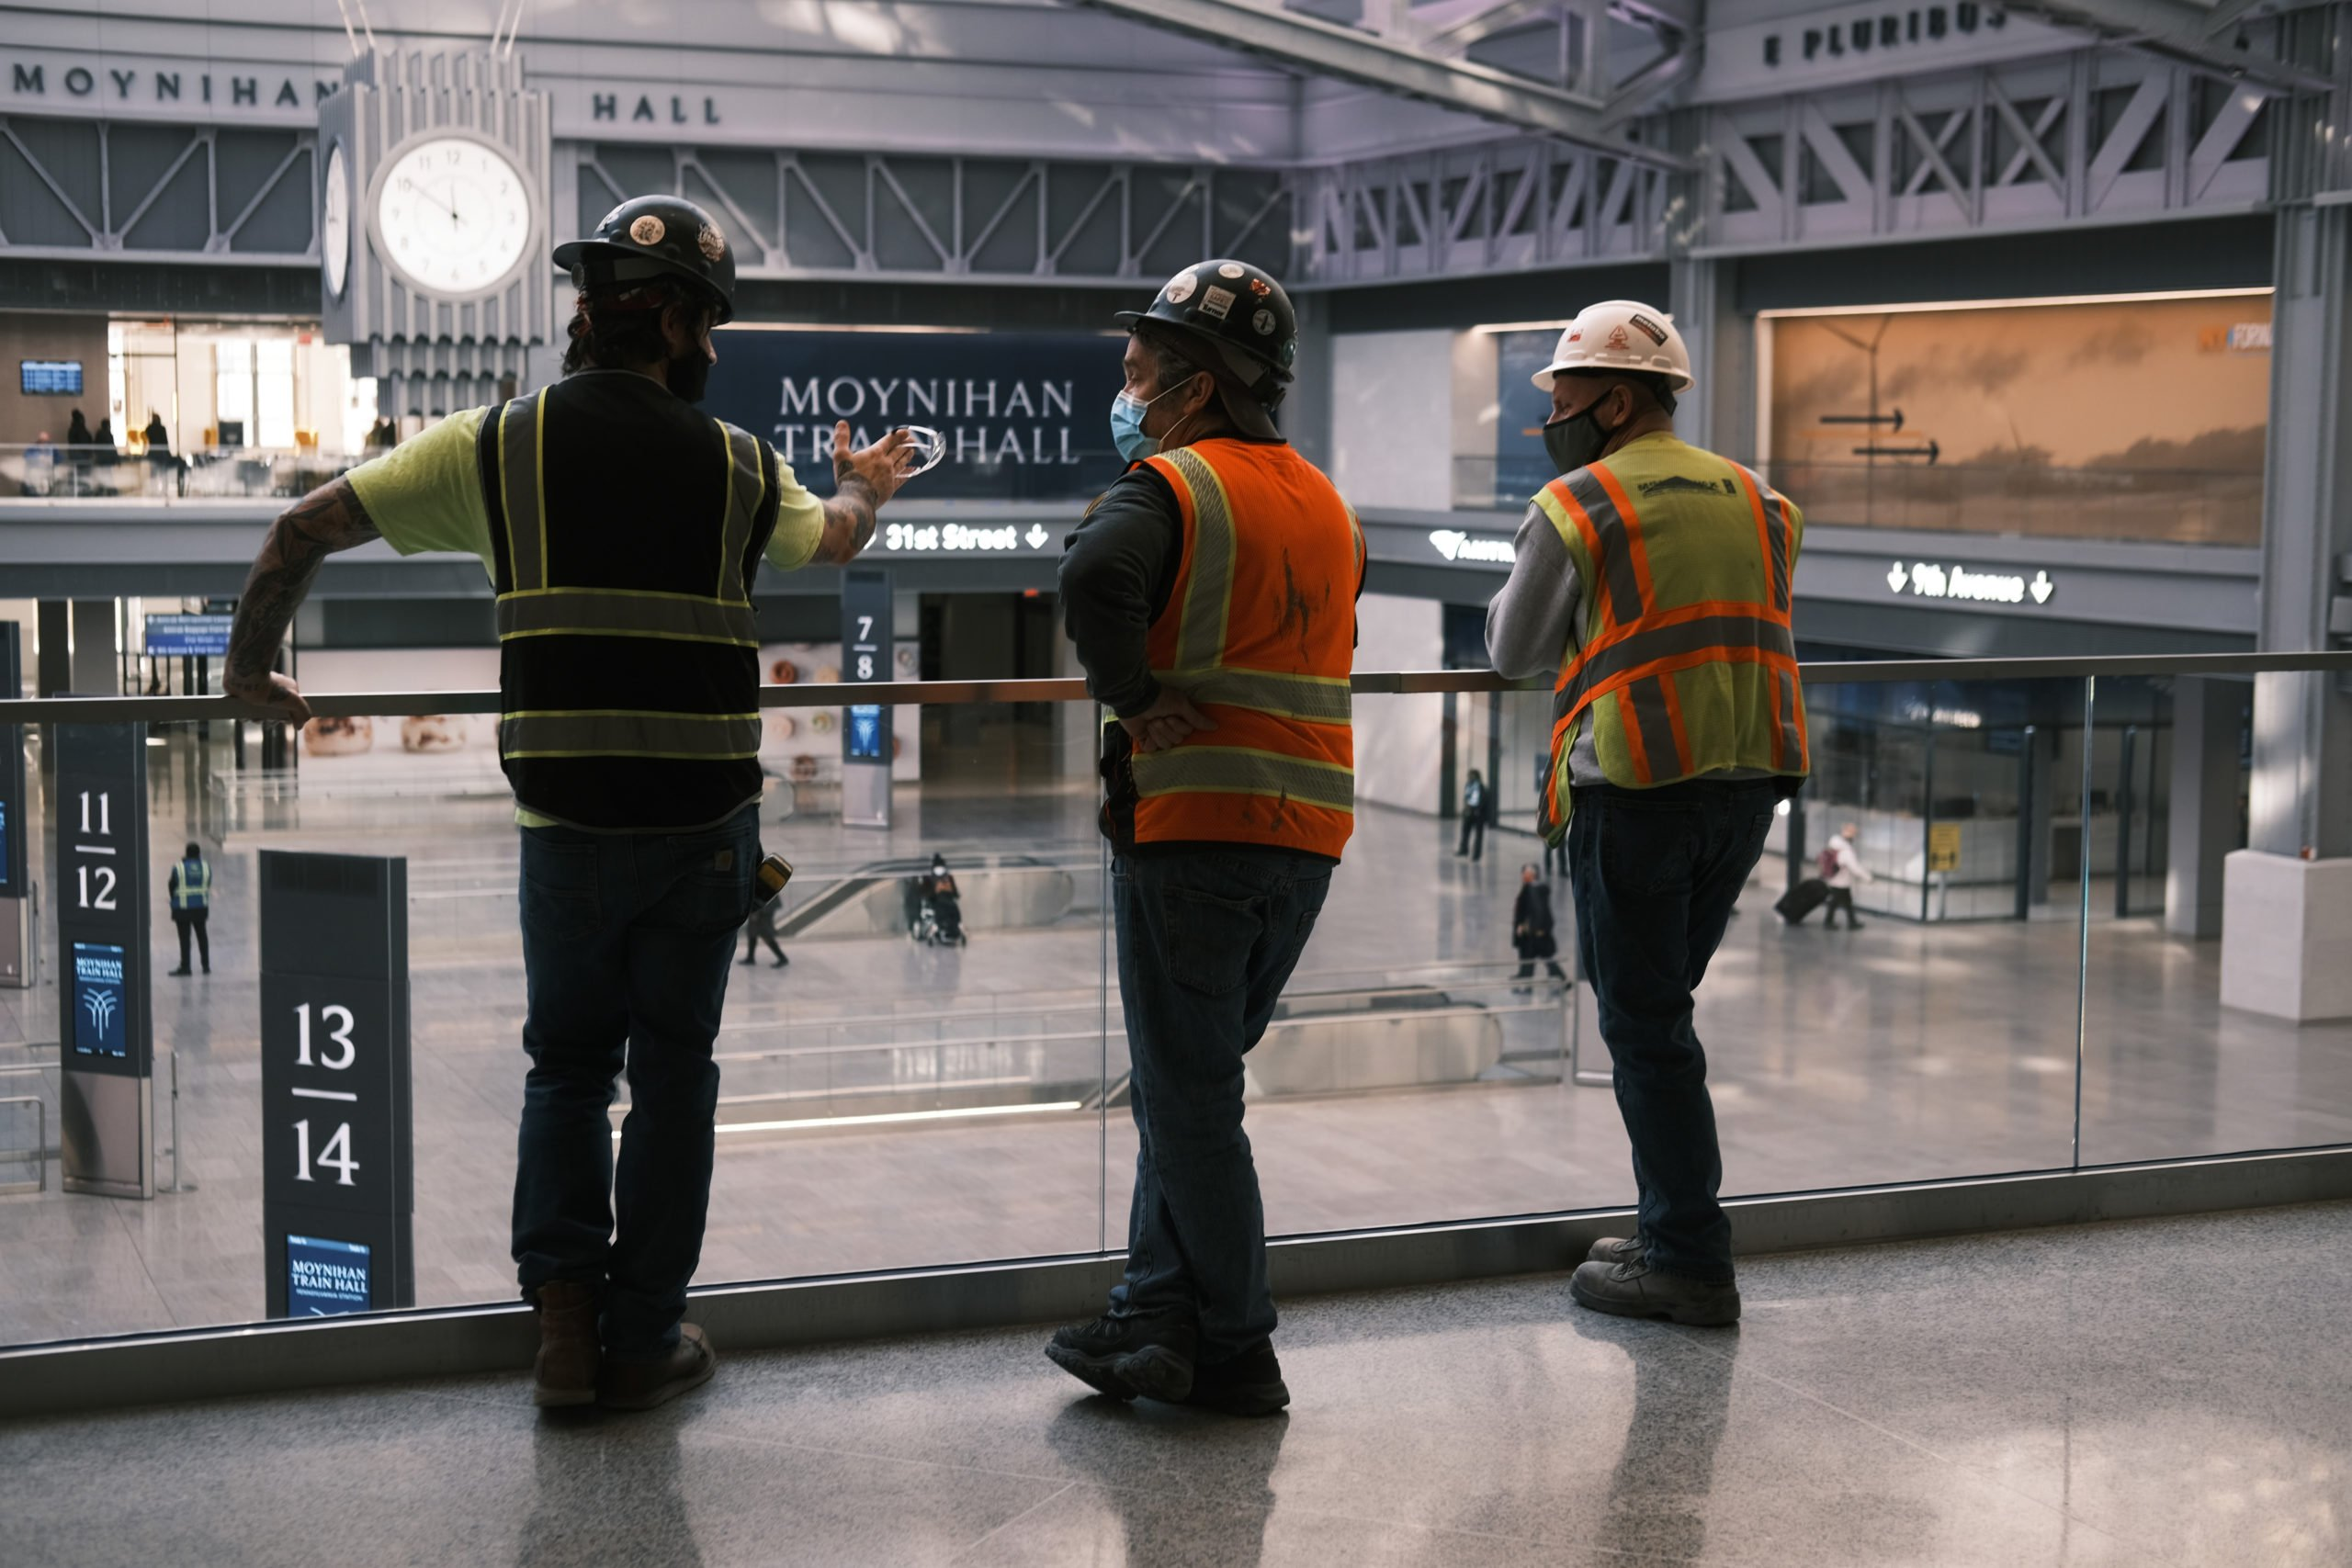 Workers involved in the construction of the newly opened Moynihan Train Hall in New York City look over the main hall on Jan. 4. (Spencer Platt/Getty Images)